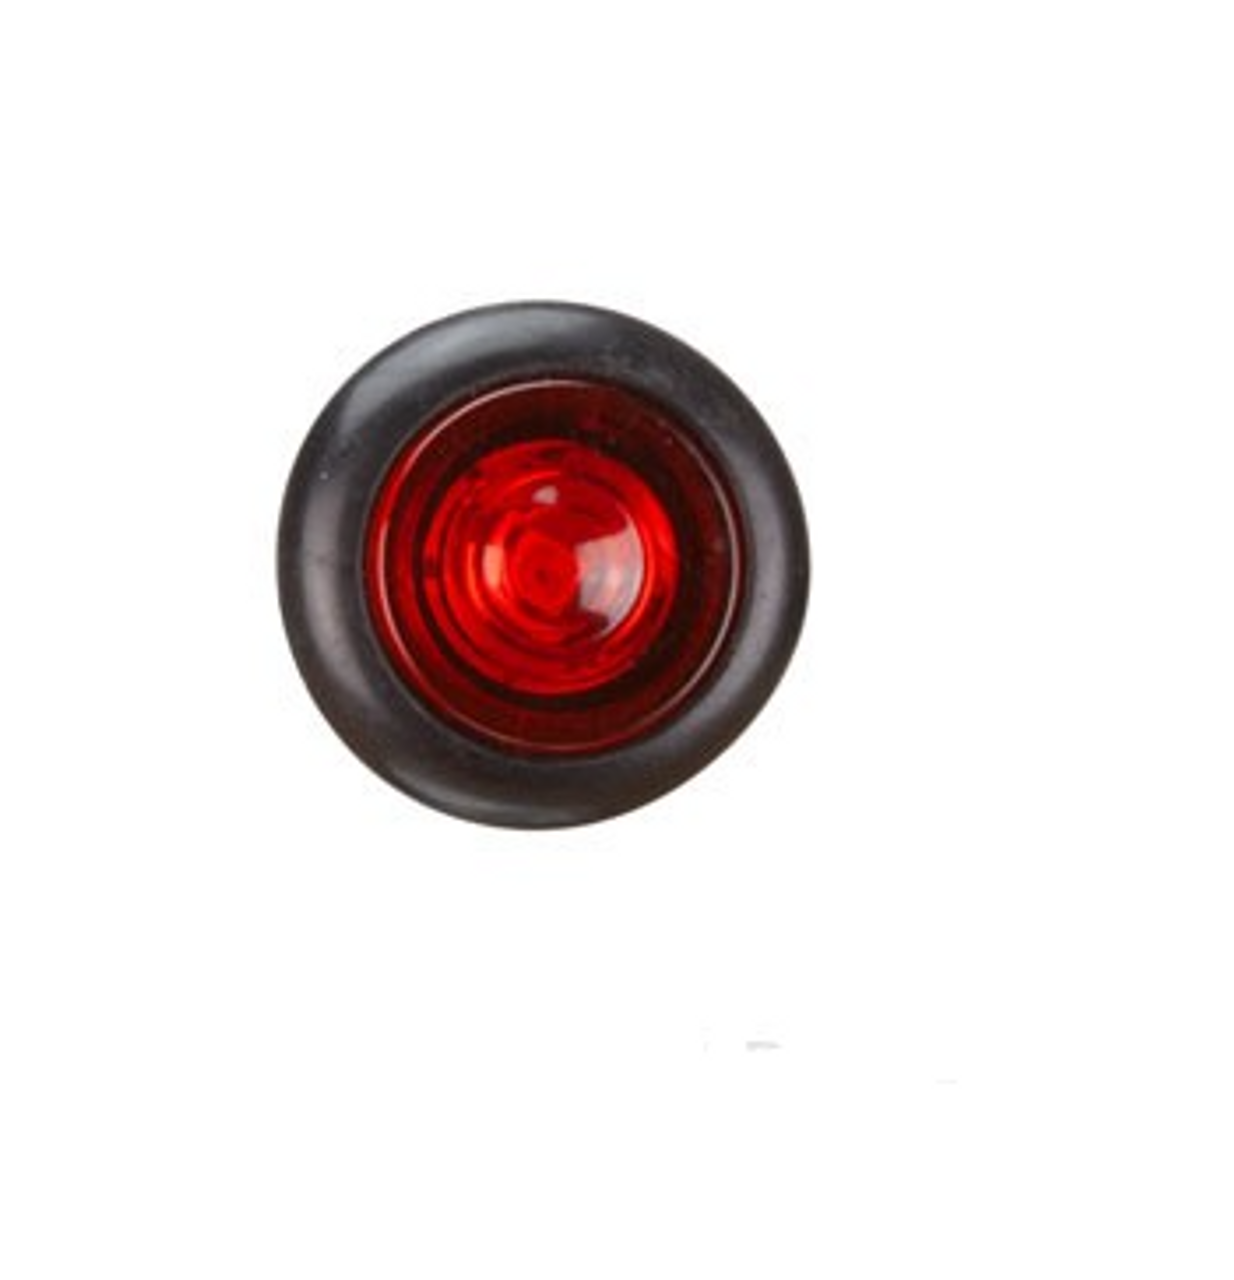 BR11R - Clearance Light LED Red. BR11 Series. 10-30V. Flush Rubber Mount. Small Round Light. RoadVision. Ultimate LED.